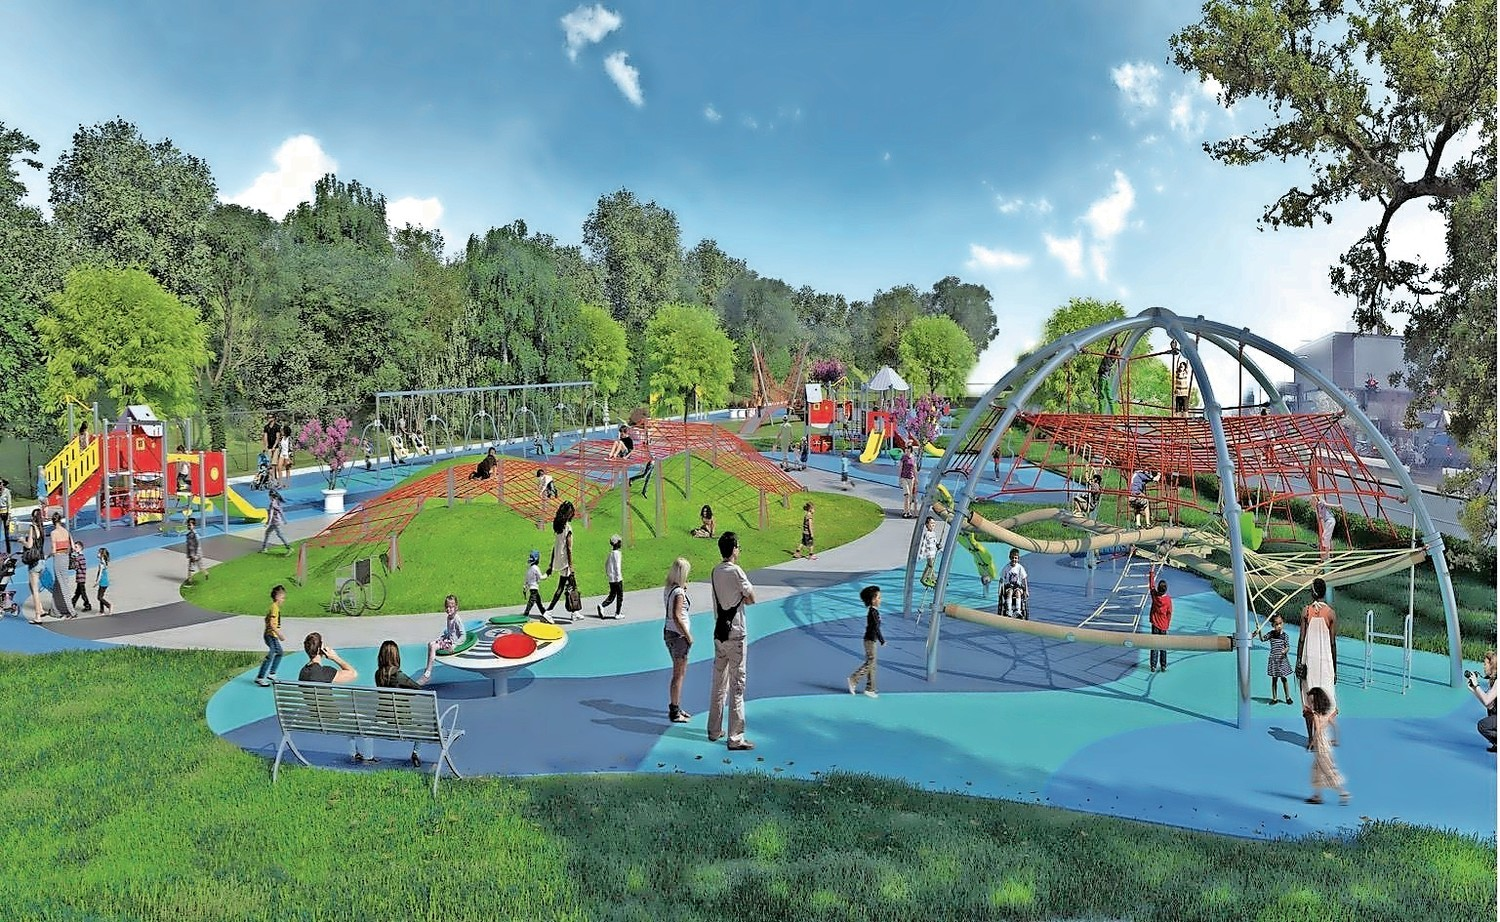 The playground proposed for Hickey Field, above, is one step closer to becoming a reality after State Sen. Todd Kaminsky helped secure a $500,000 grant for the project.